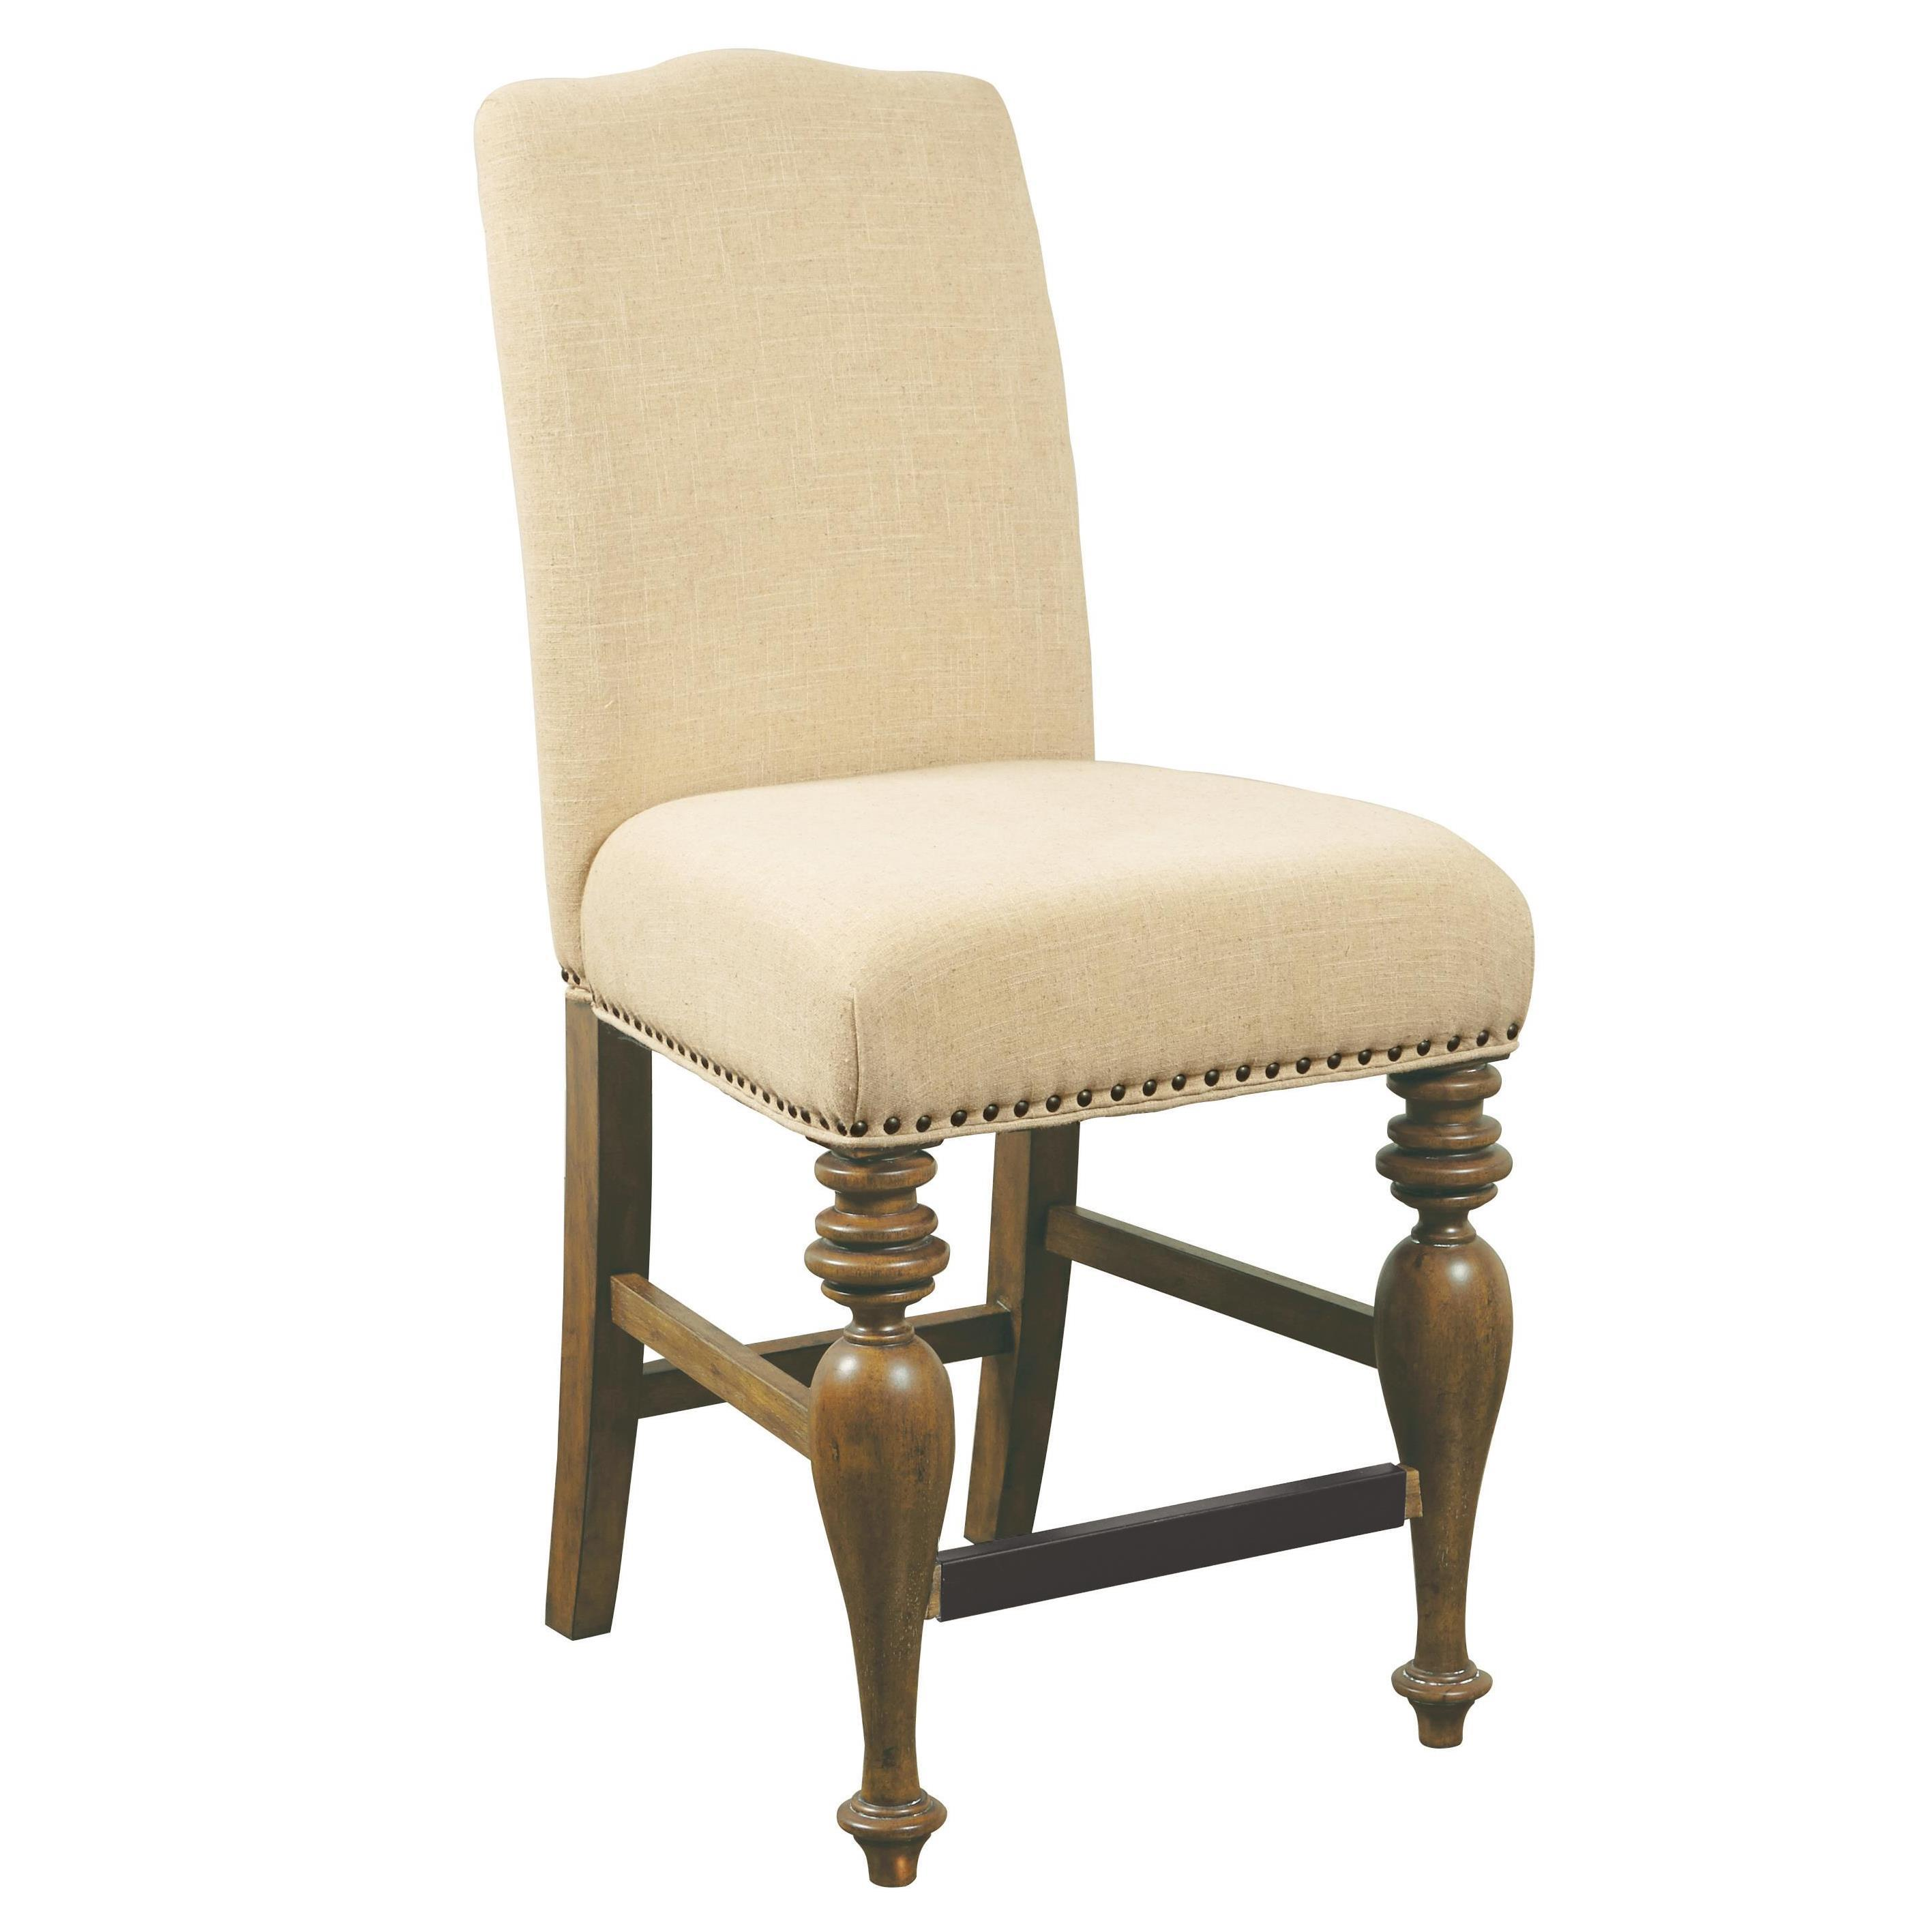 Belfort Select Virginia Mill Upholstered Back Gathering Chair - Item Number: 8854-179F